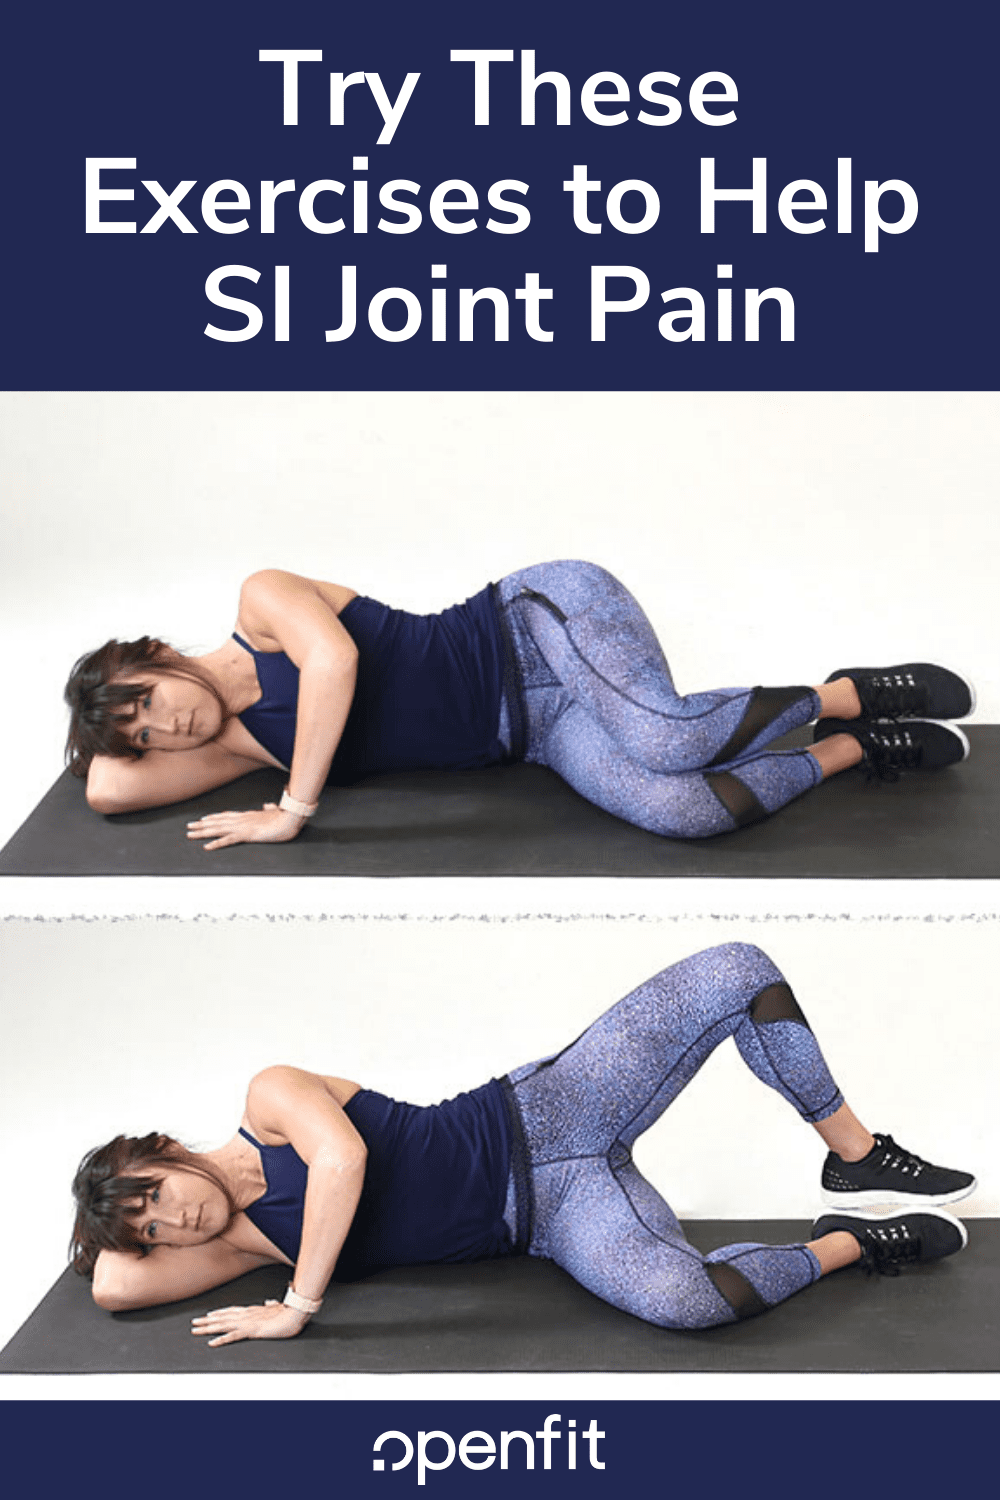 si joint exercises - pin image